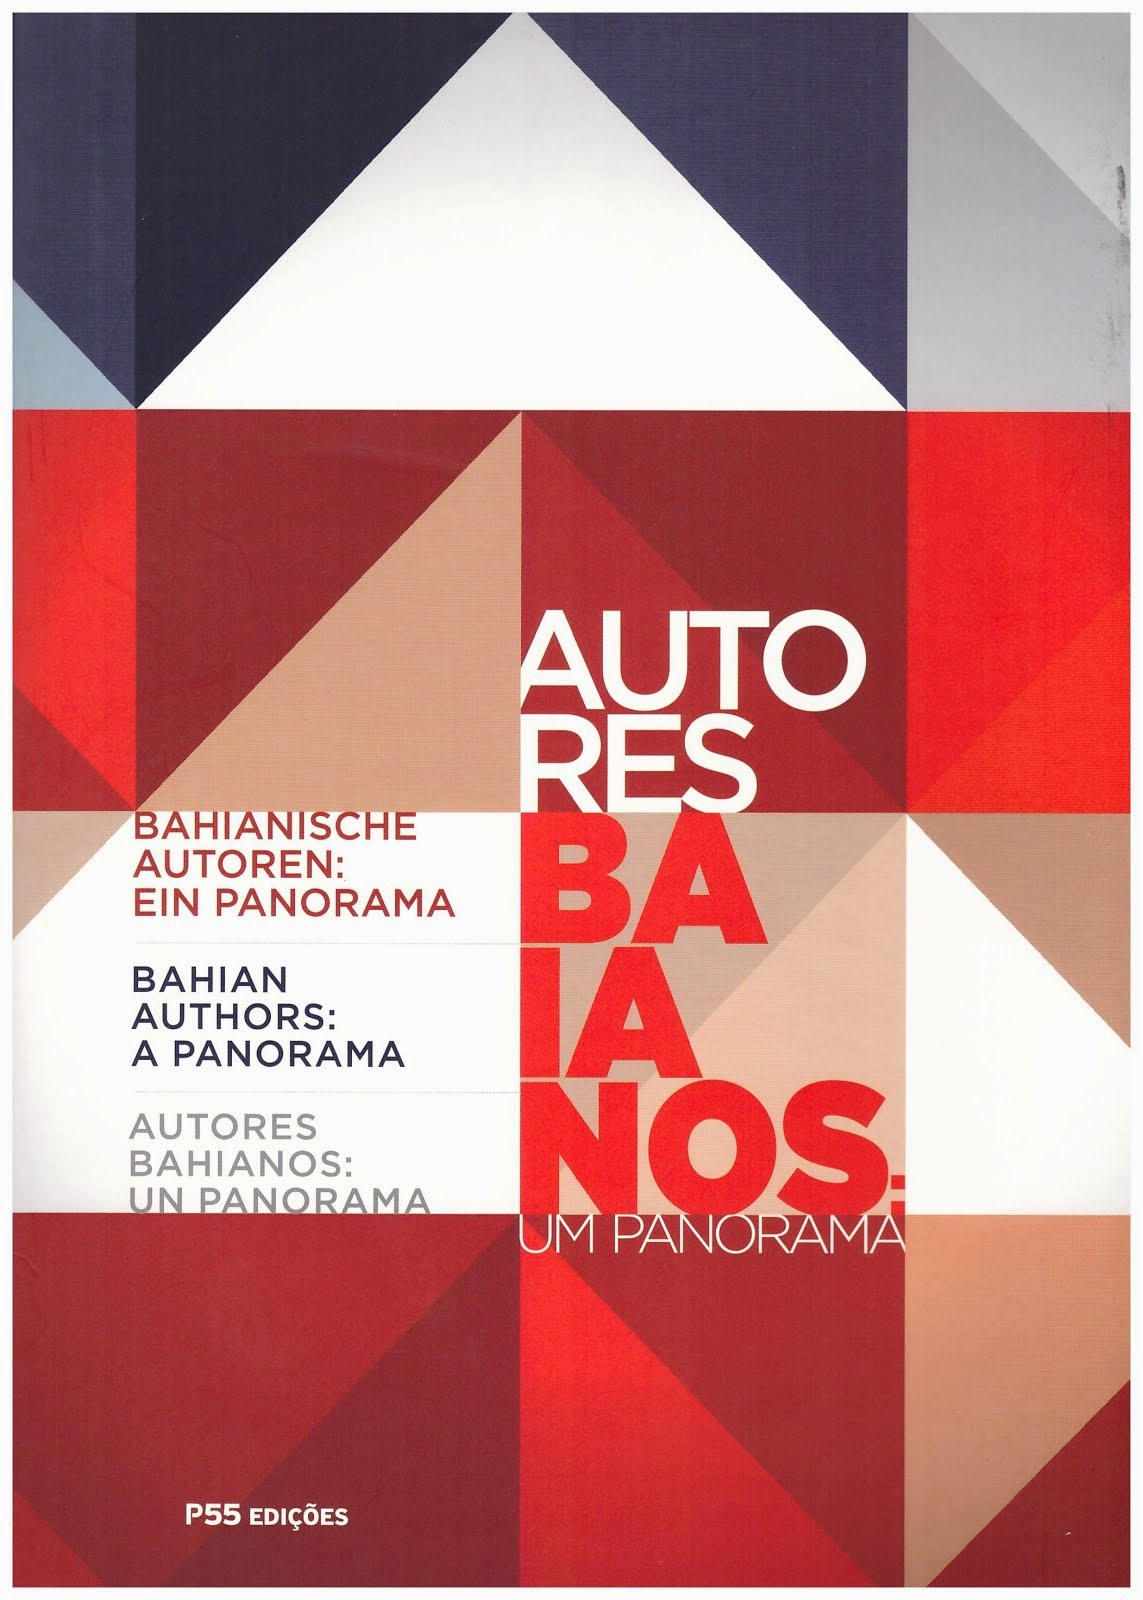 Autores bahianos